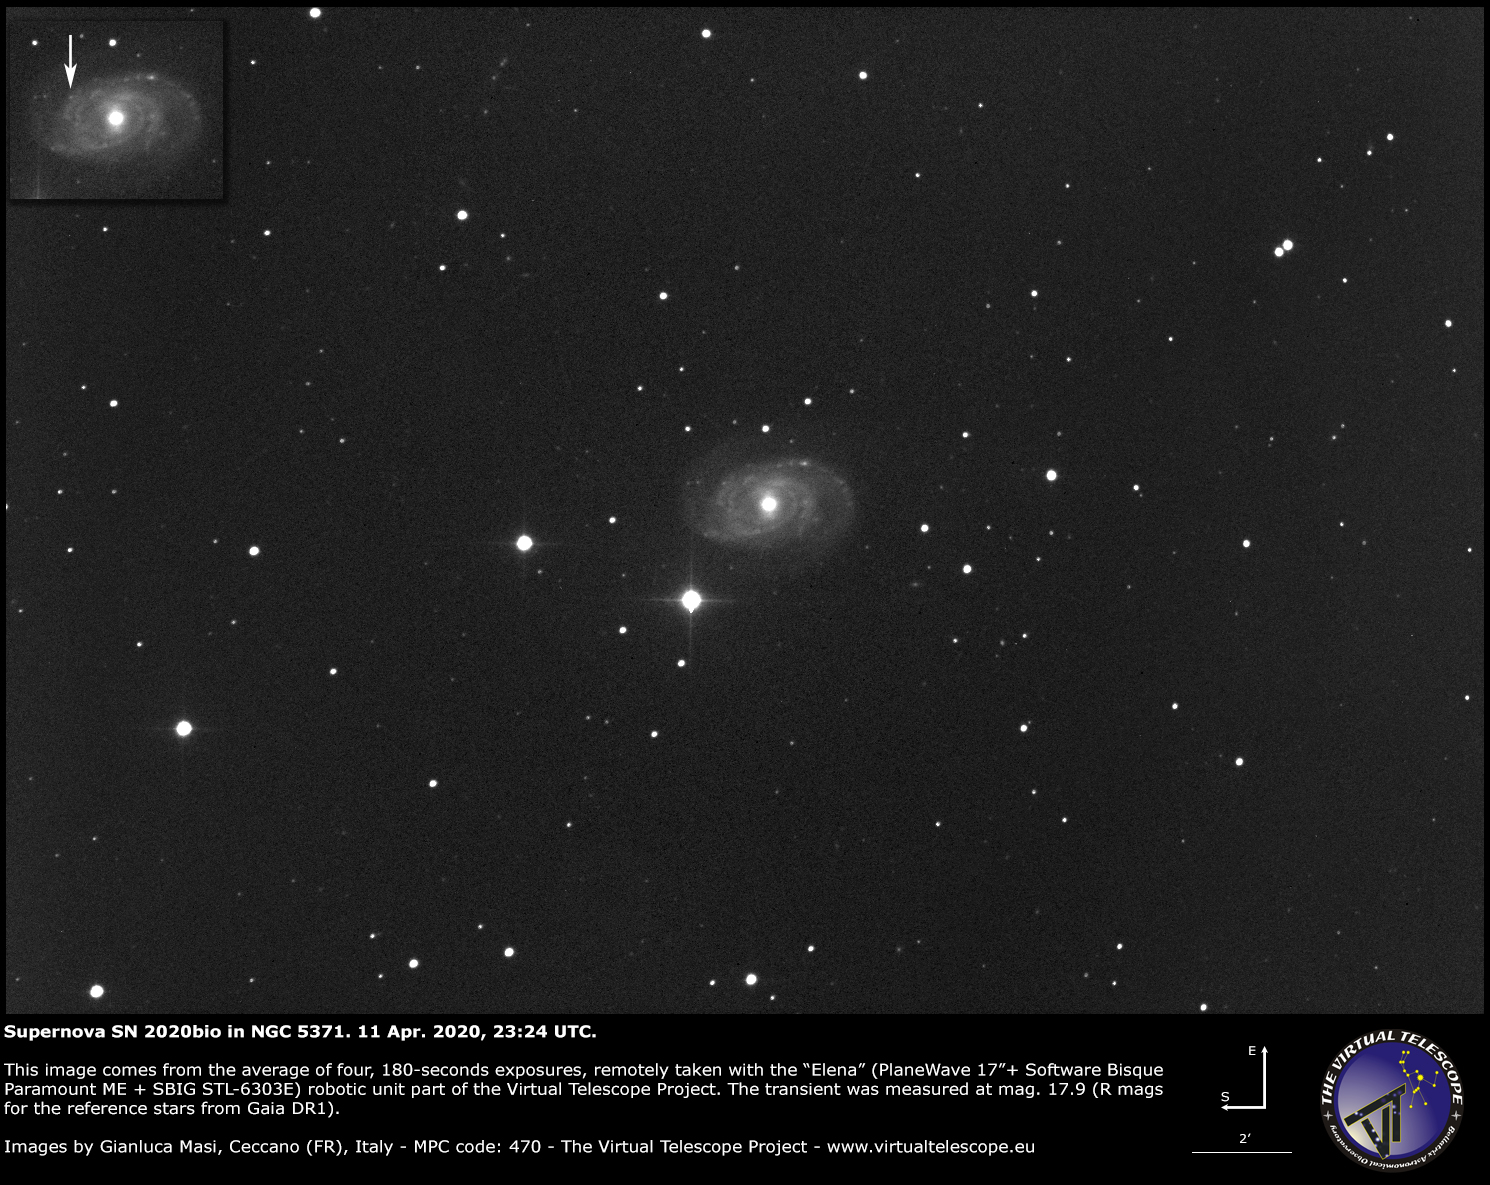 Supernova SN 2020bio in NGC 5371. 11 Apr. 2020